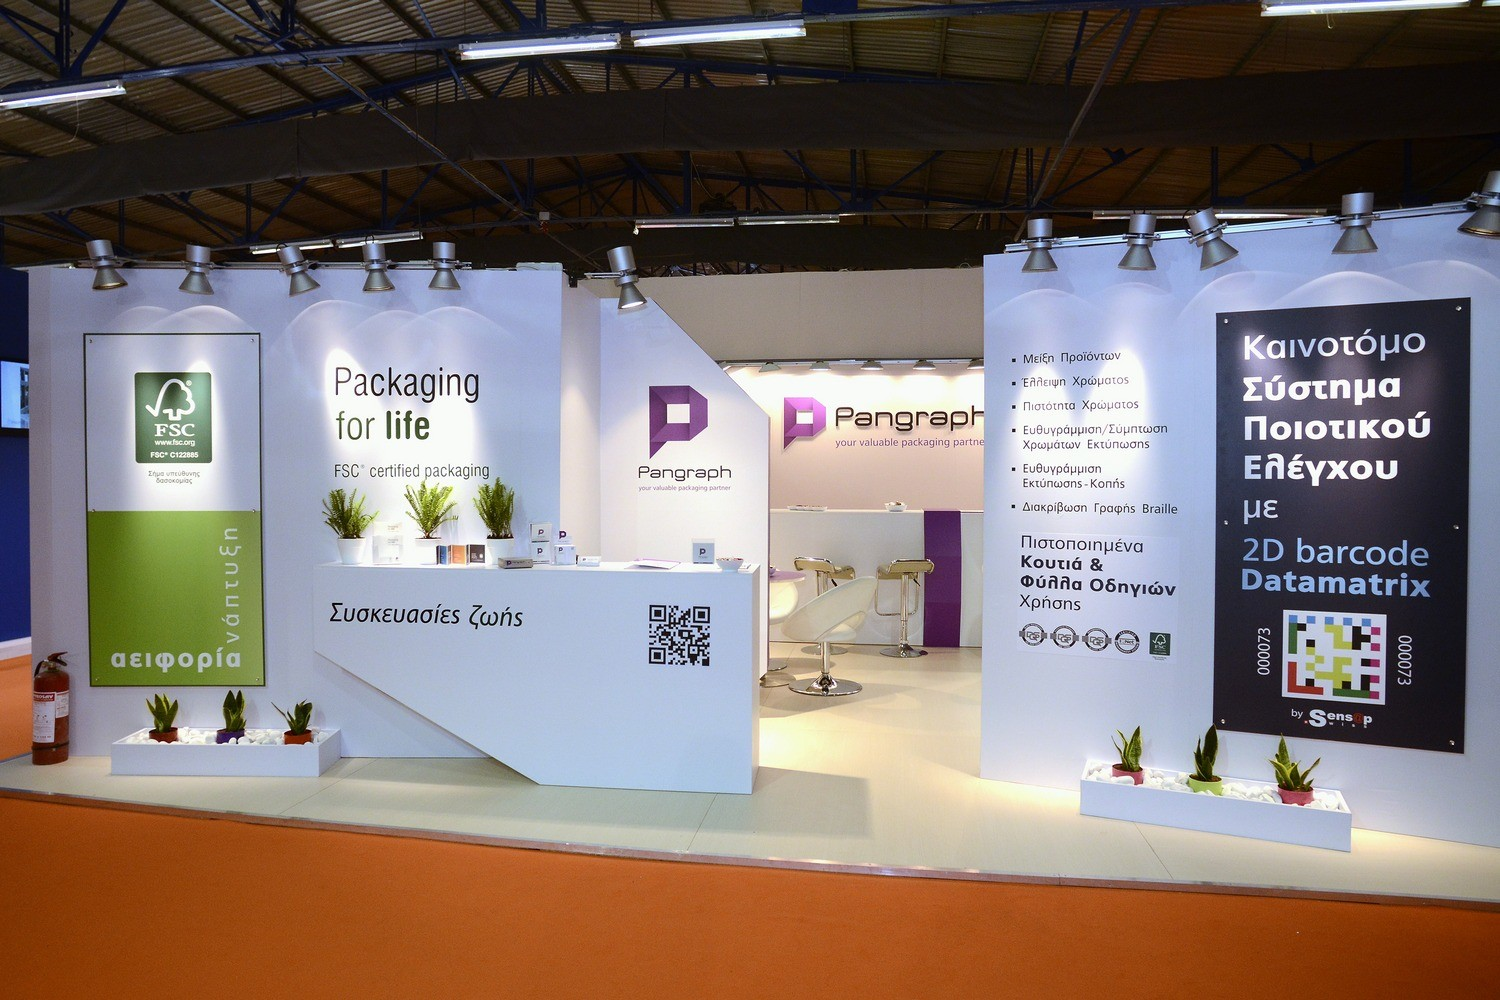 EXHIBITION STAND-1 Pangraph